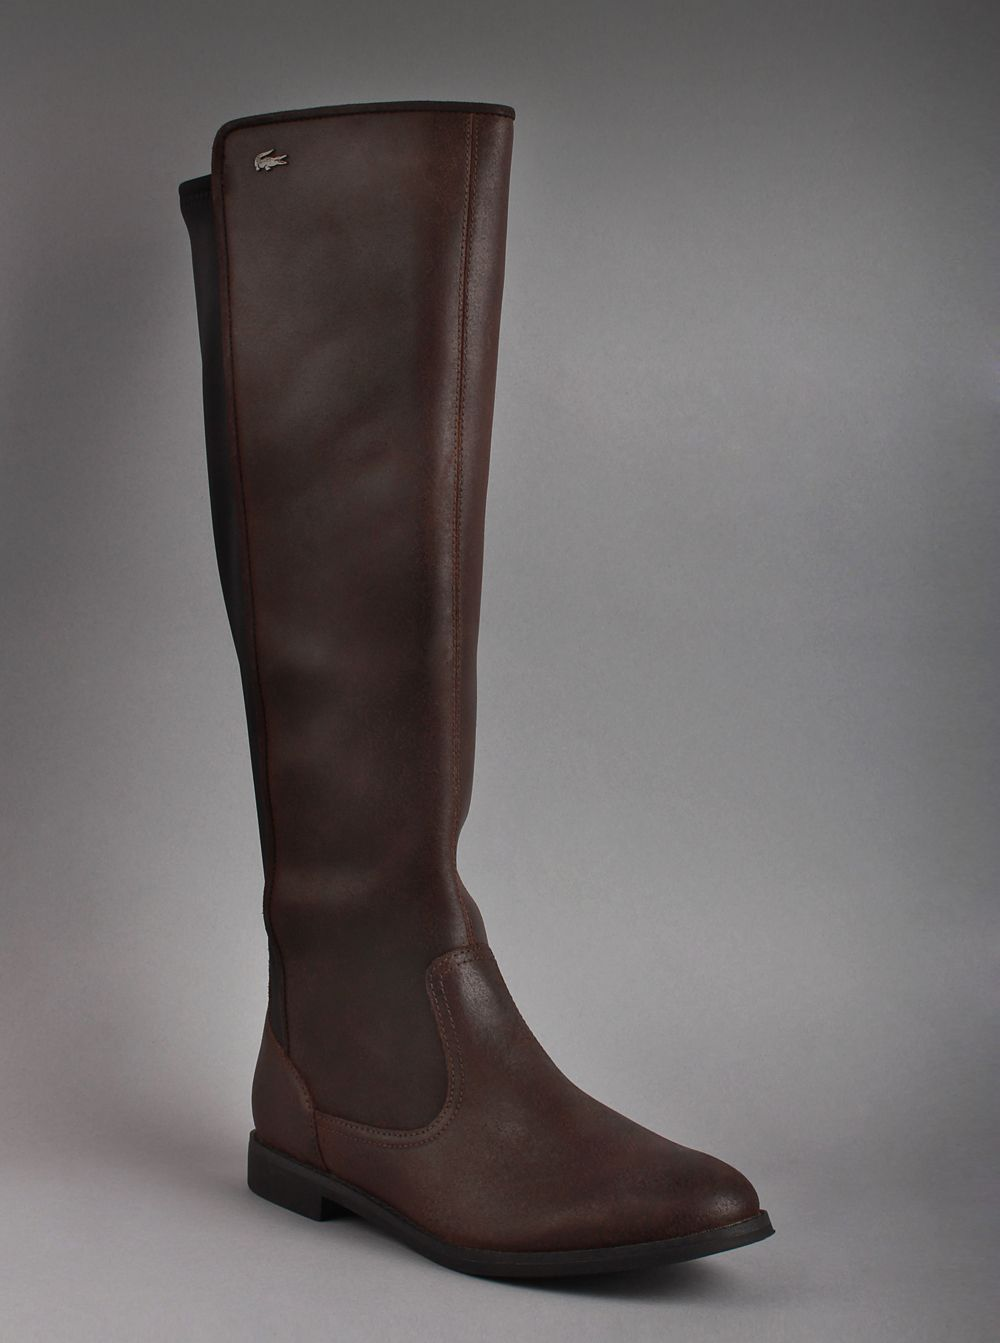 2f9145841 Lacoste® Women s Rosemont 5 Boots in Dark Brown. Take a walk this winter in  these gorgeous leather boots that show off your great sense of style.